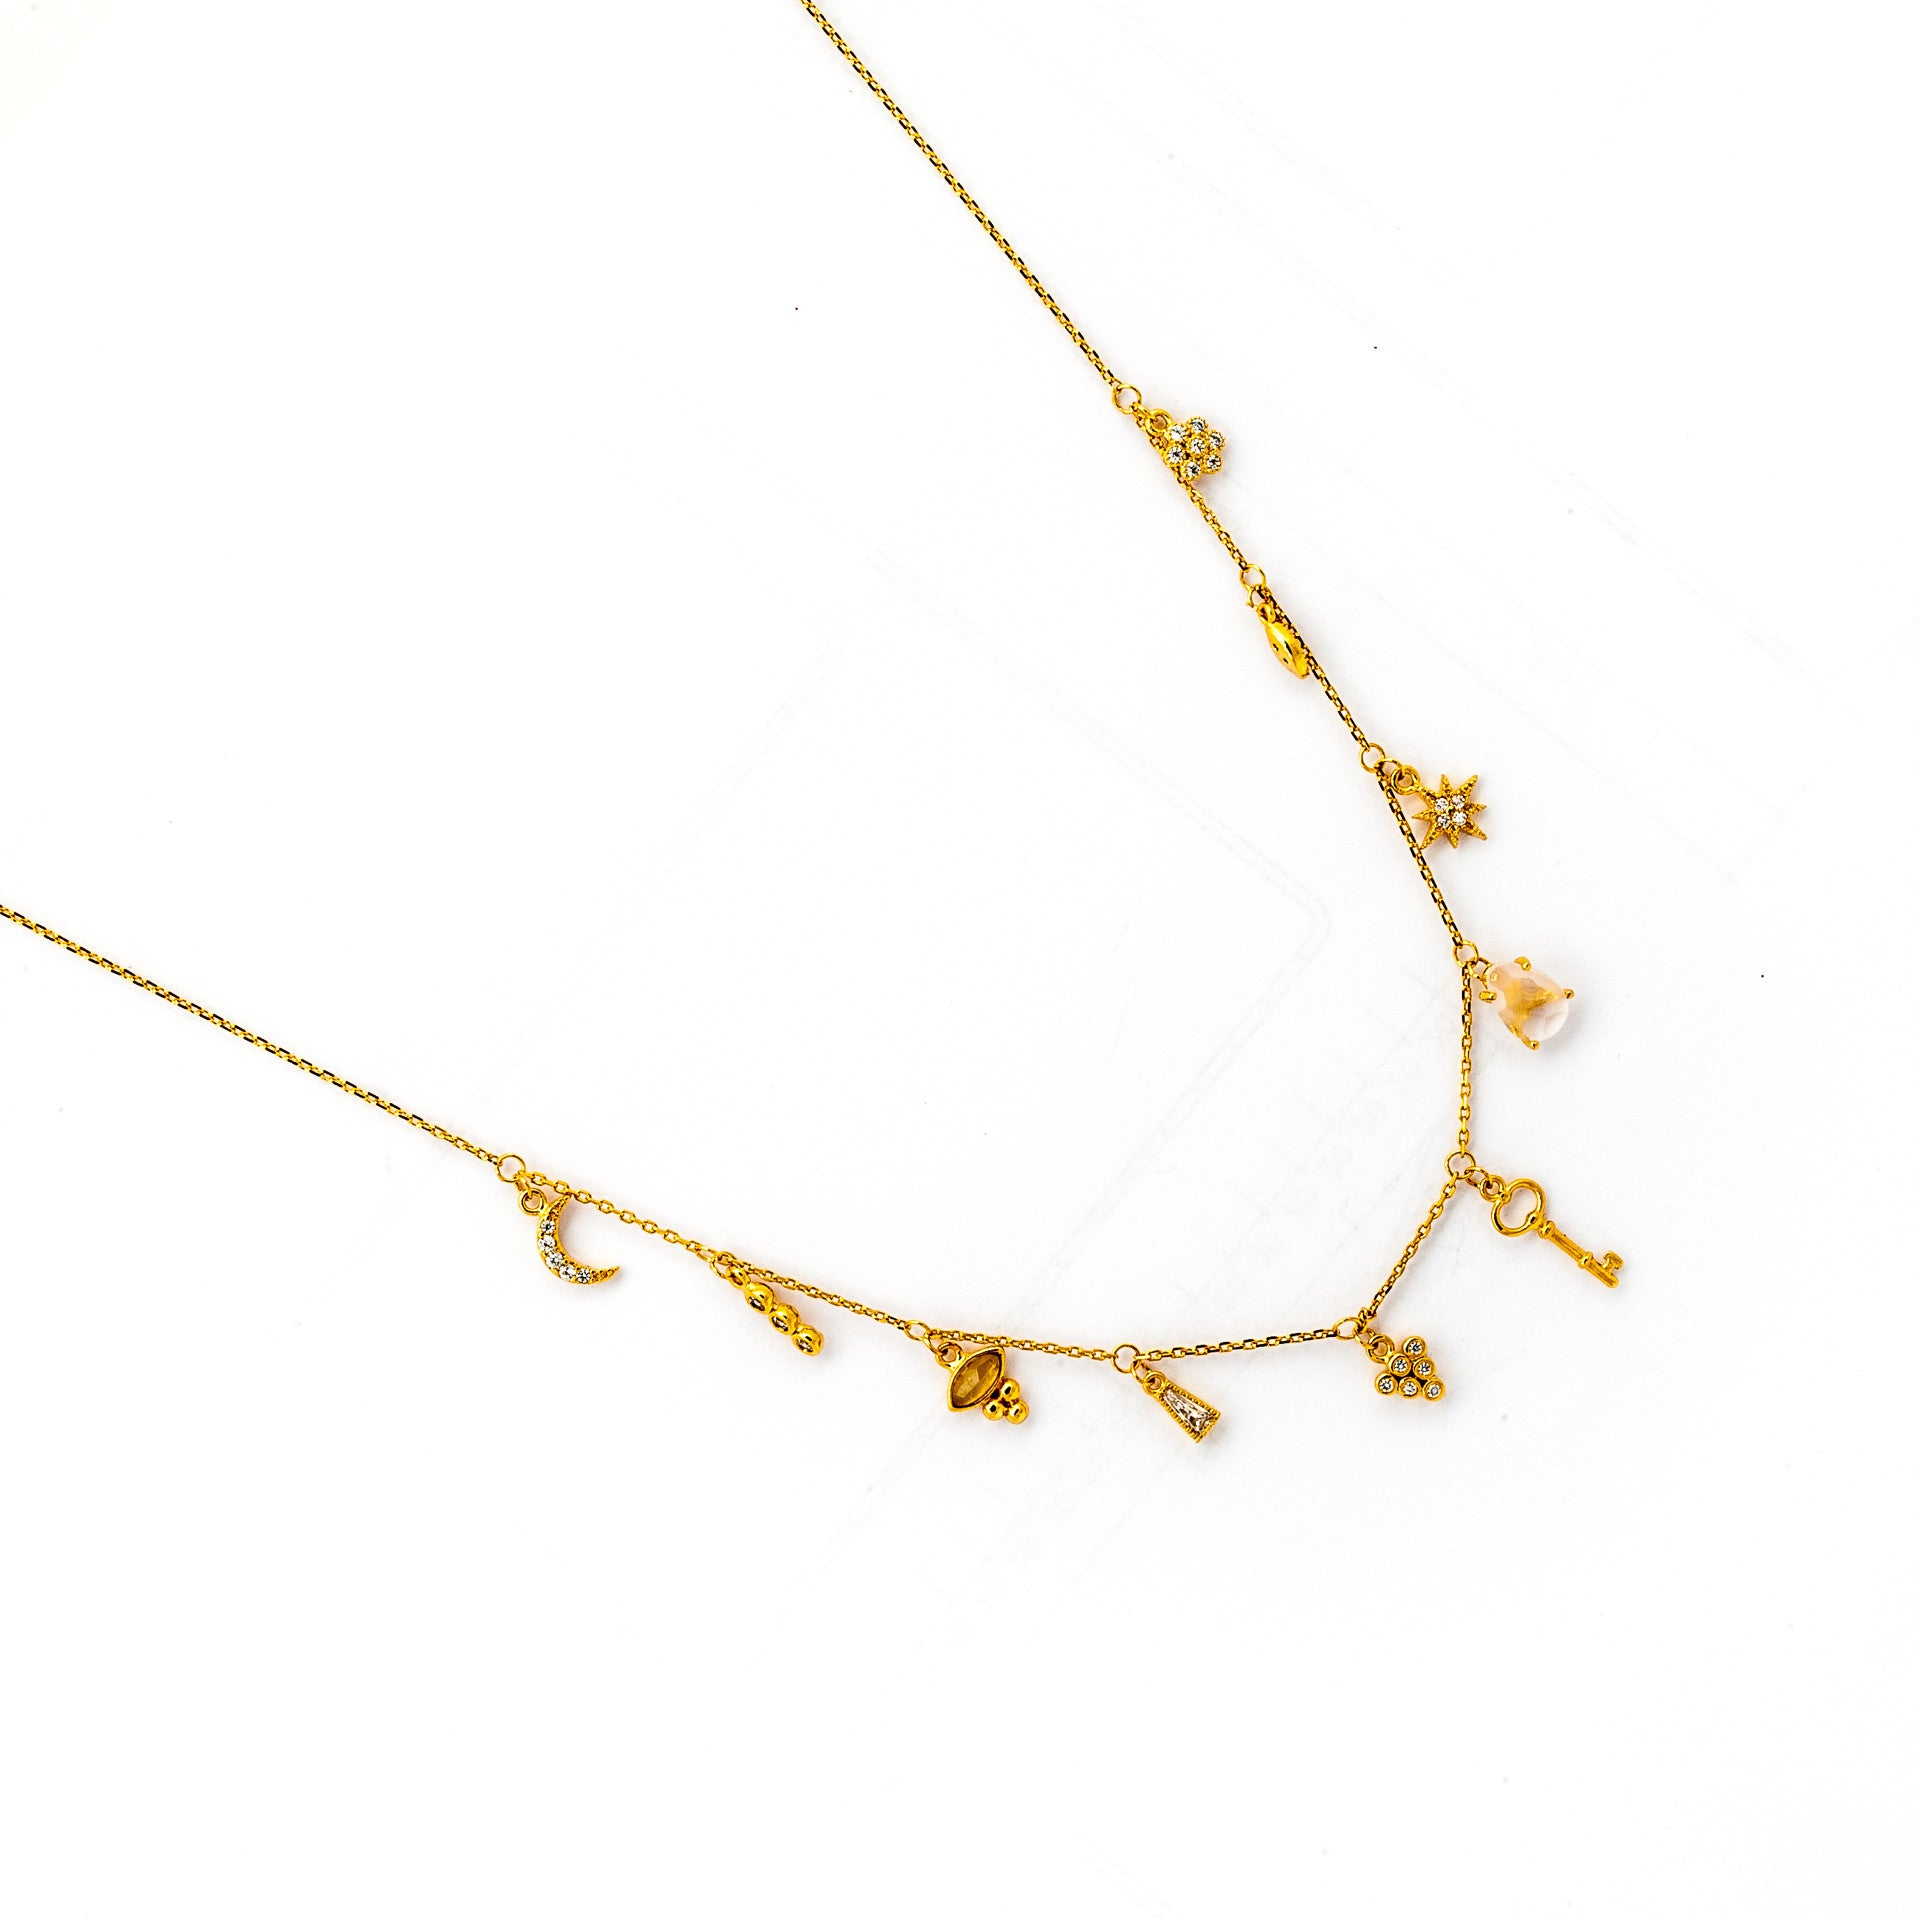 GOLD NECKLACE WITH STATIONED CHARMS